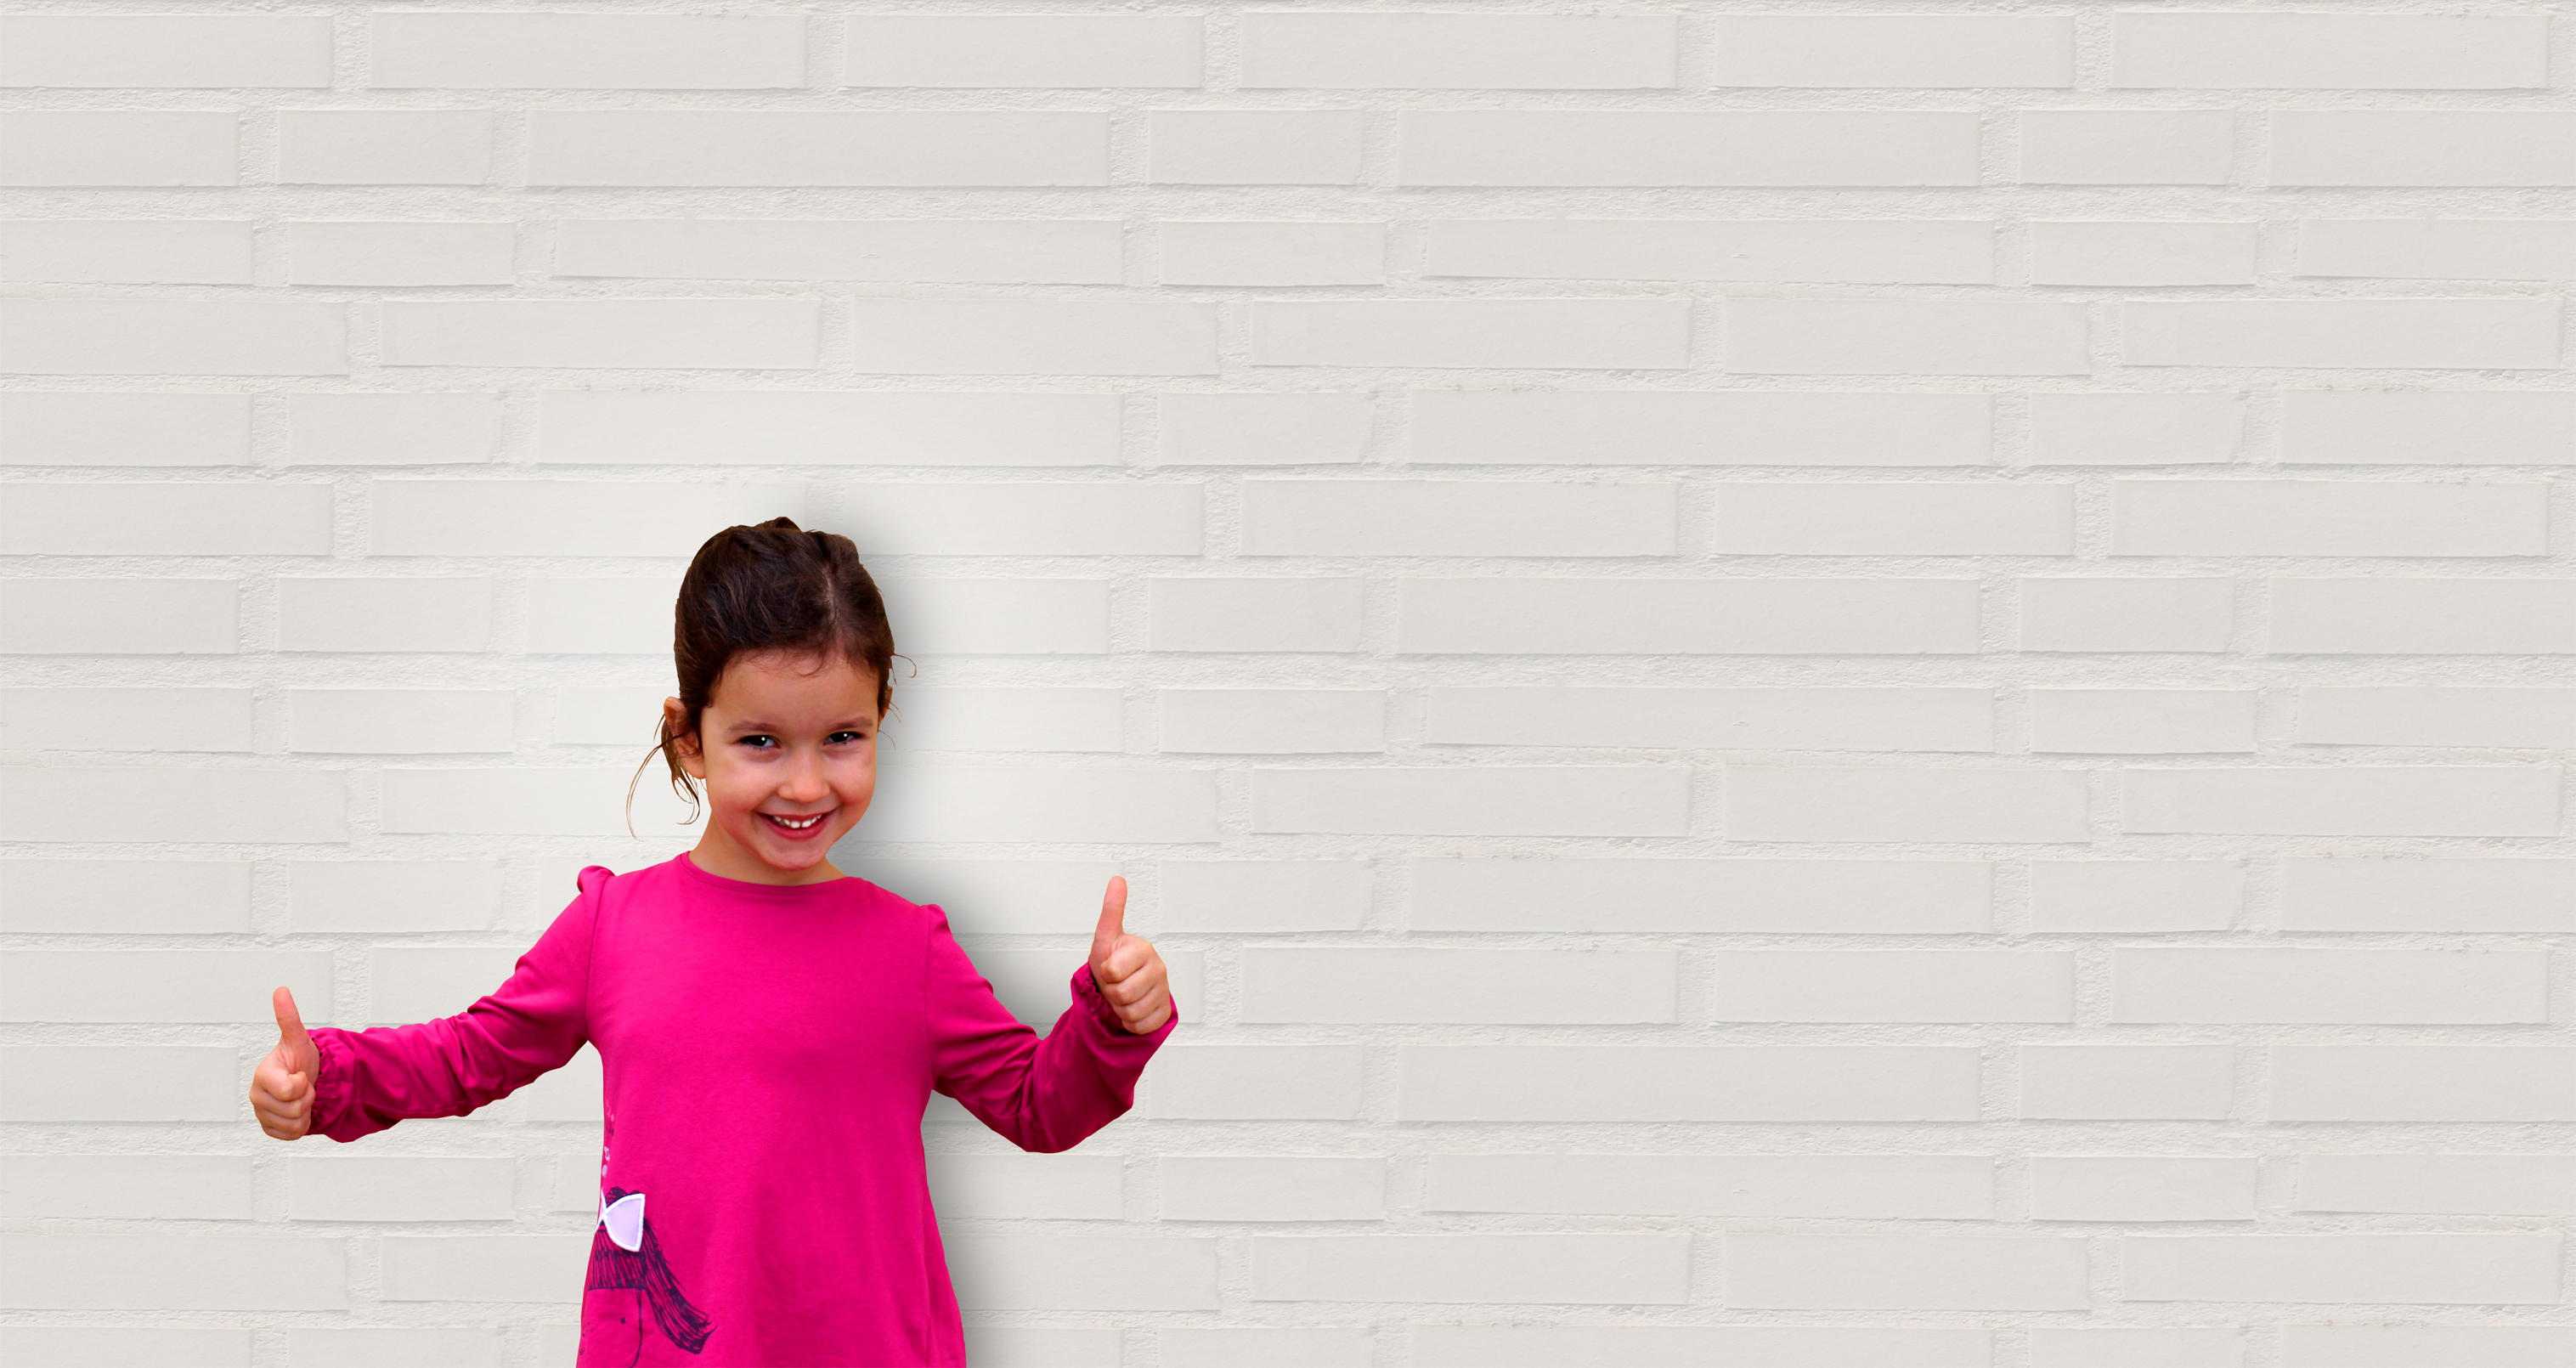 Cute Little Girl Showing Thumbs Up, Achievement, Person, Positivism, Positive, HQ Photo